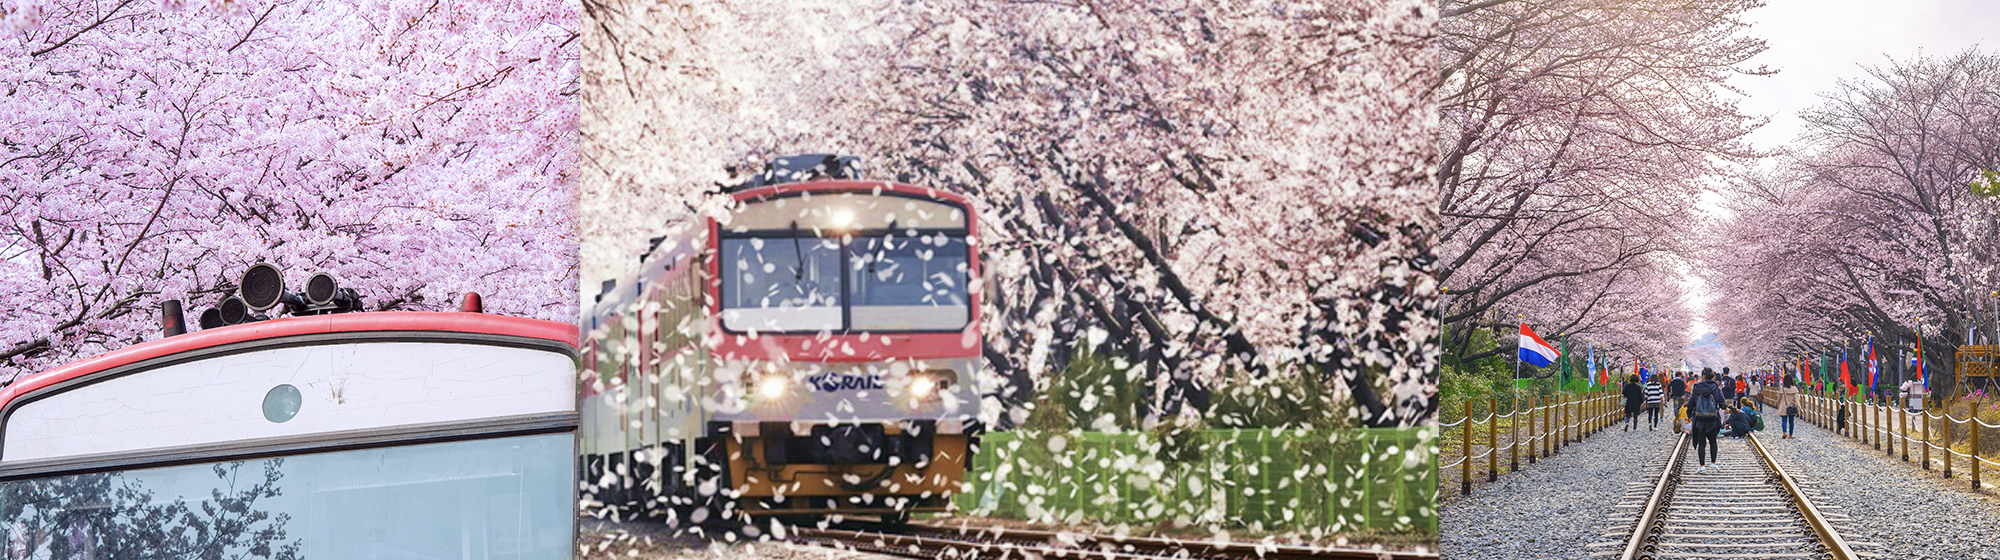 2020 Jinhae Cherry Blossom Festival 1Day Shuttle Bus Package Tour – From Busan (Mar 27 – Apr 6) | KoreaTravelEasy